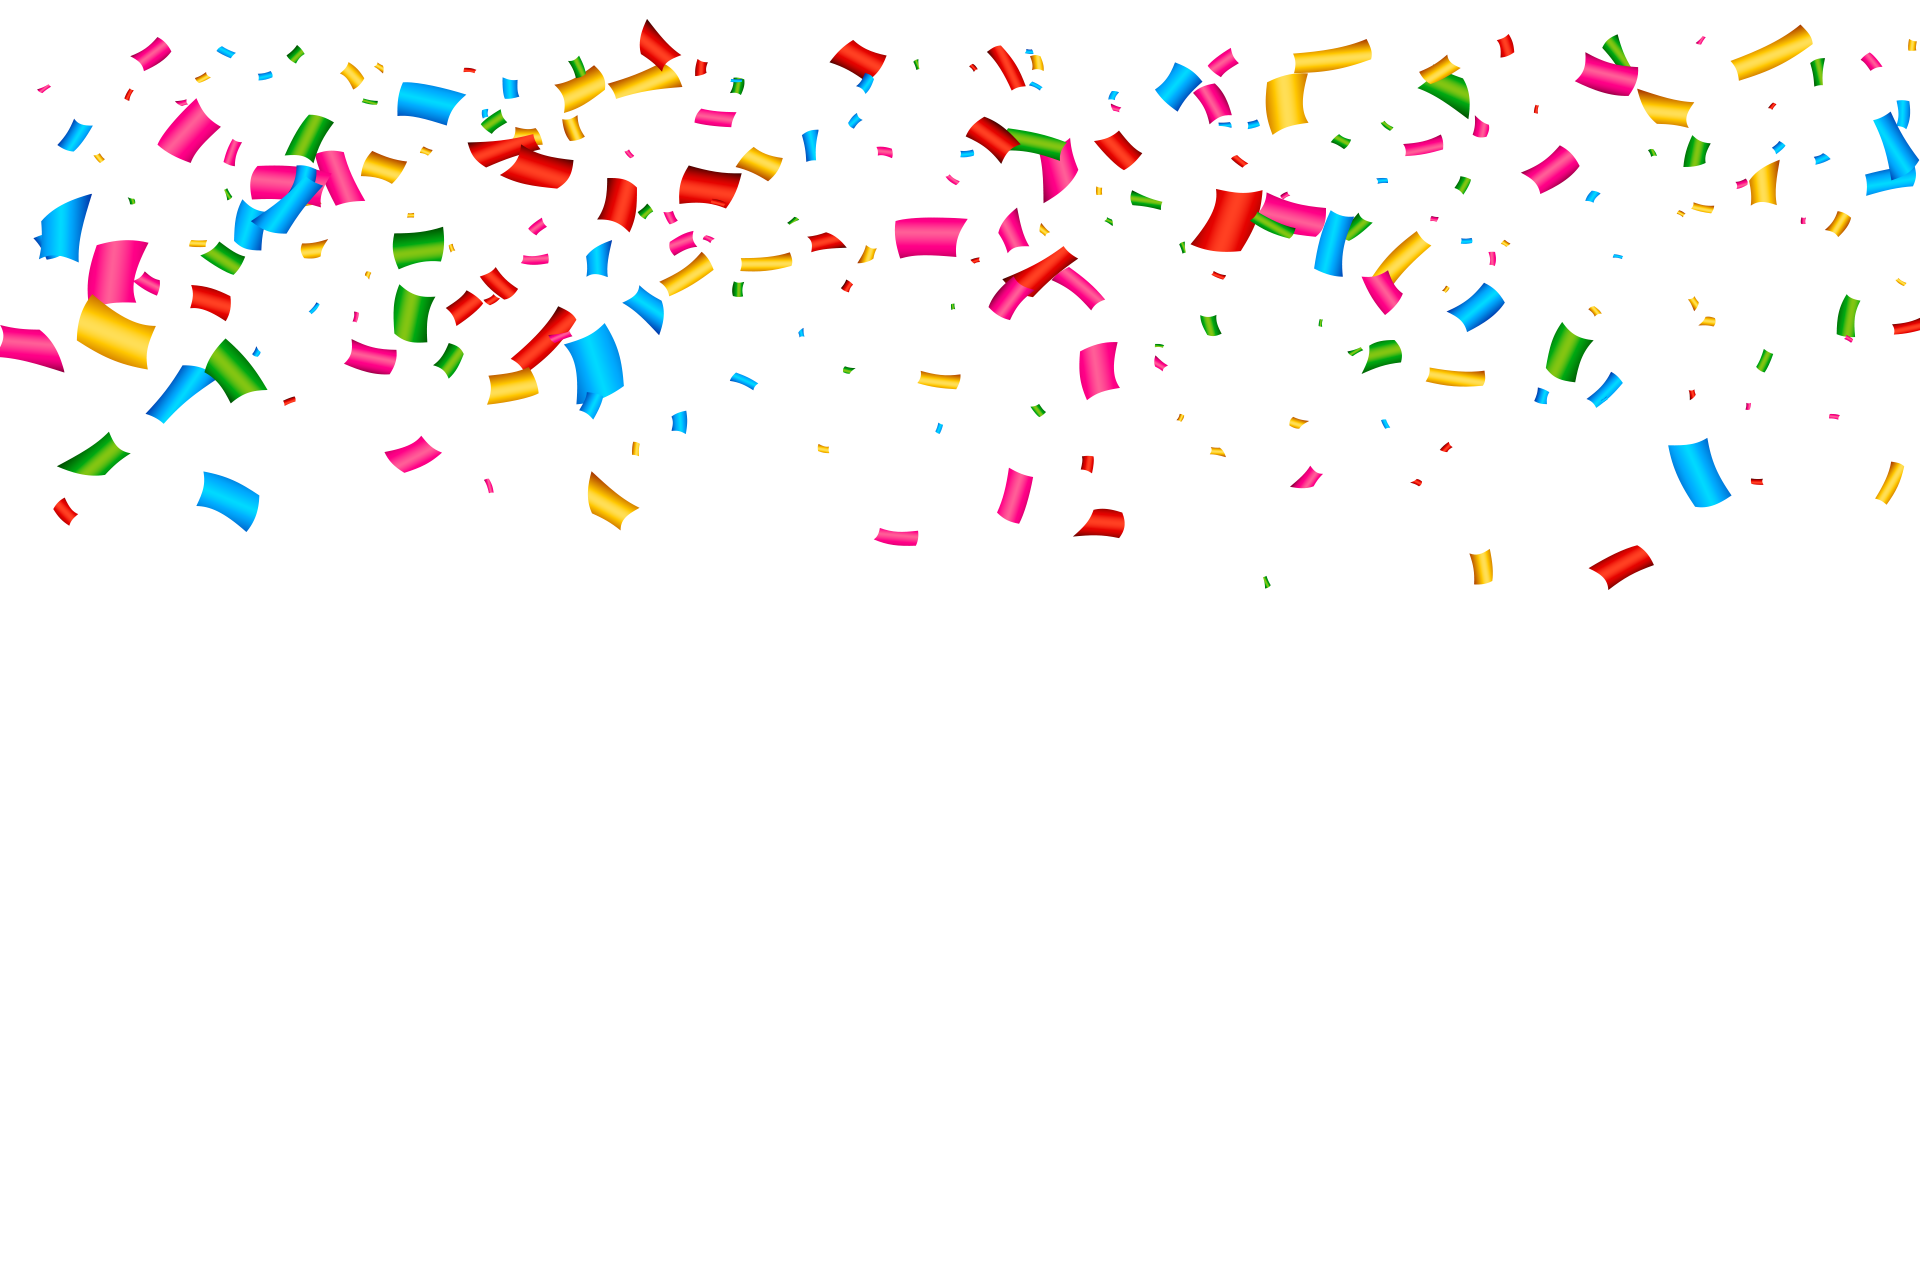 Free fiesta png. Confetti desktop wallpaper party